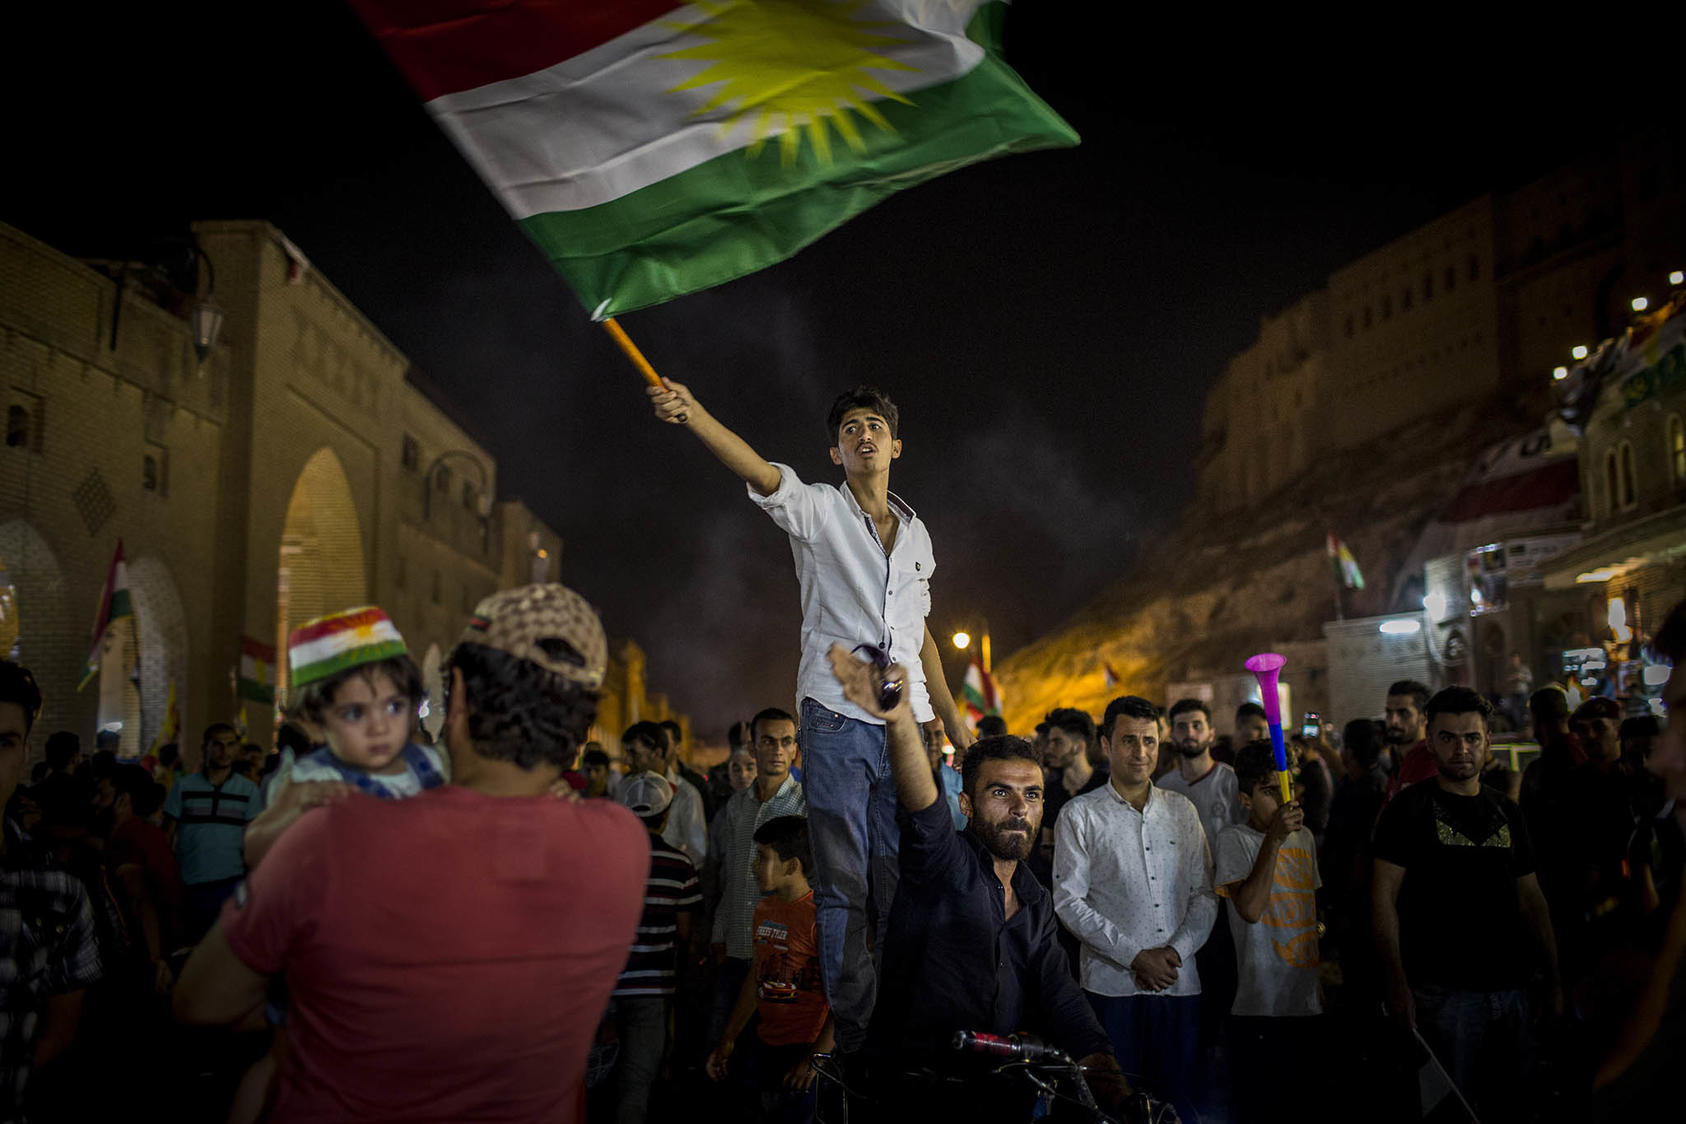 A man waves the Kurdish flag after the results of an independence referendum were announced in Irbil, Iraq. (Ivor Prickett/The New York Times)